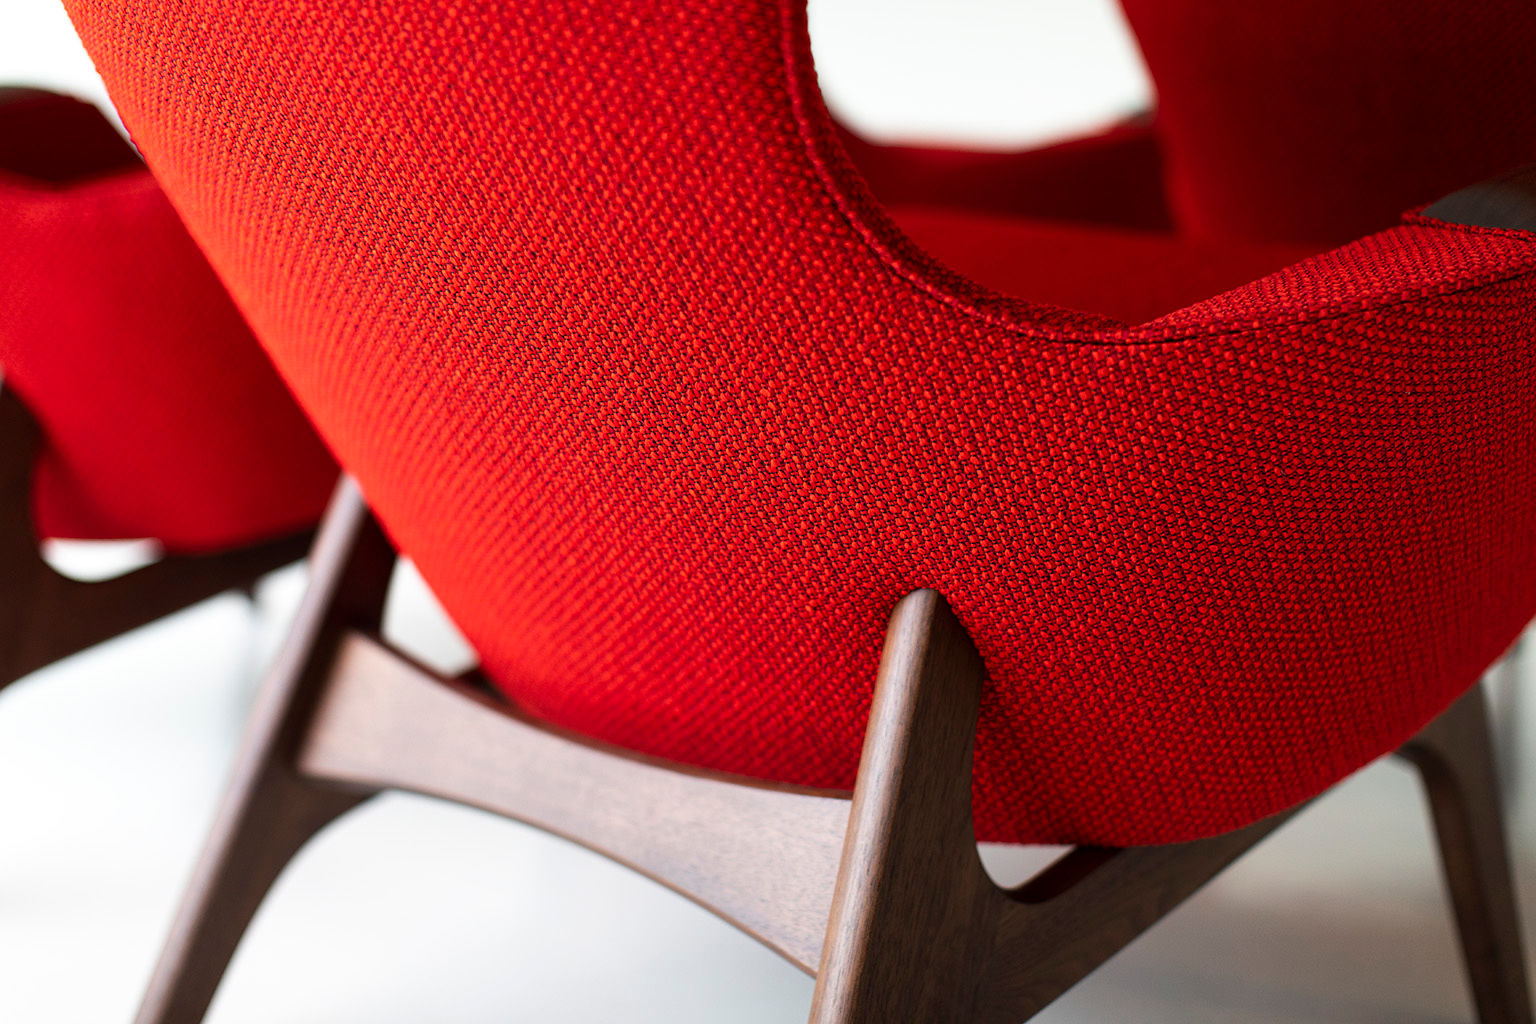 0T3A8948-Red-Wing-Chairs-04